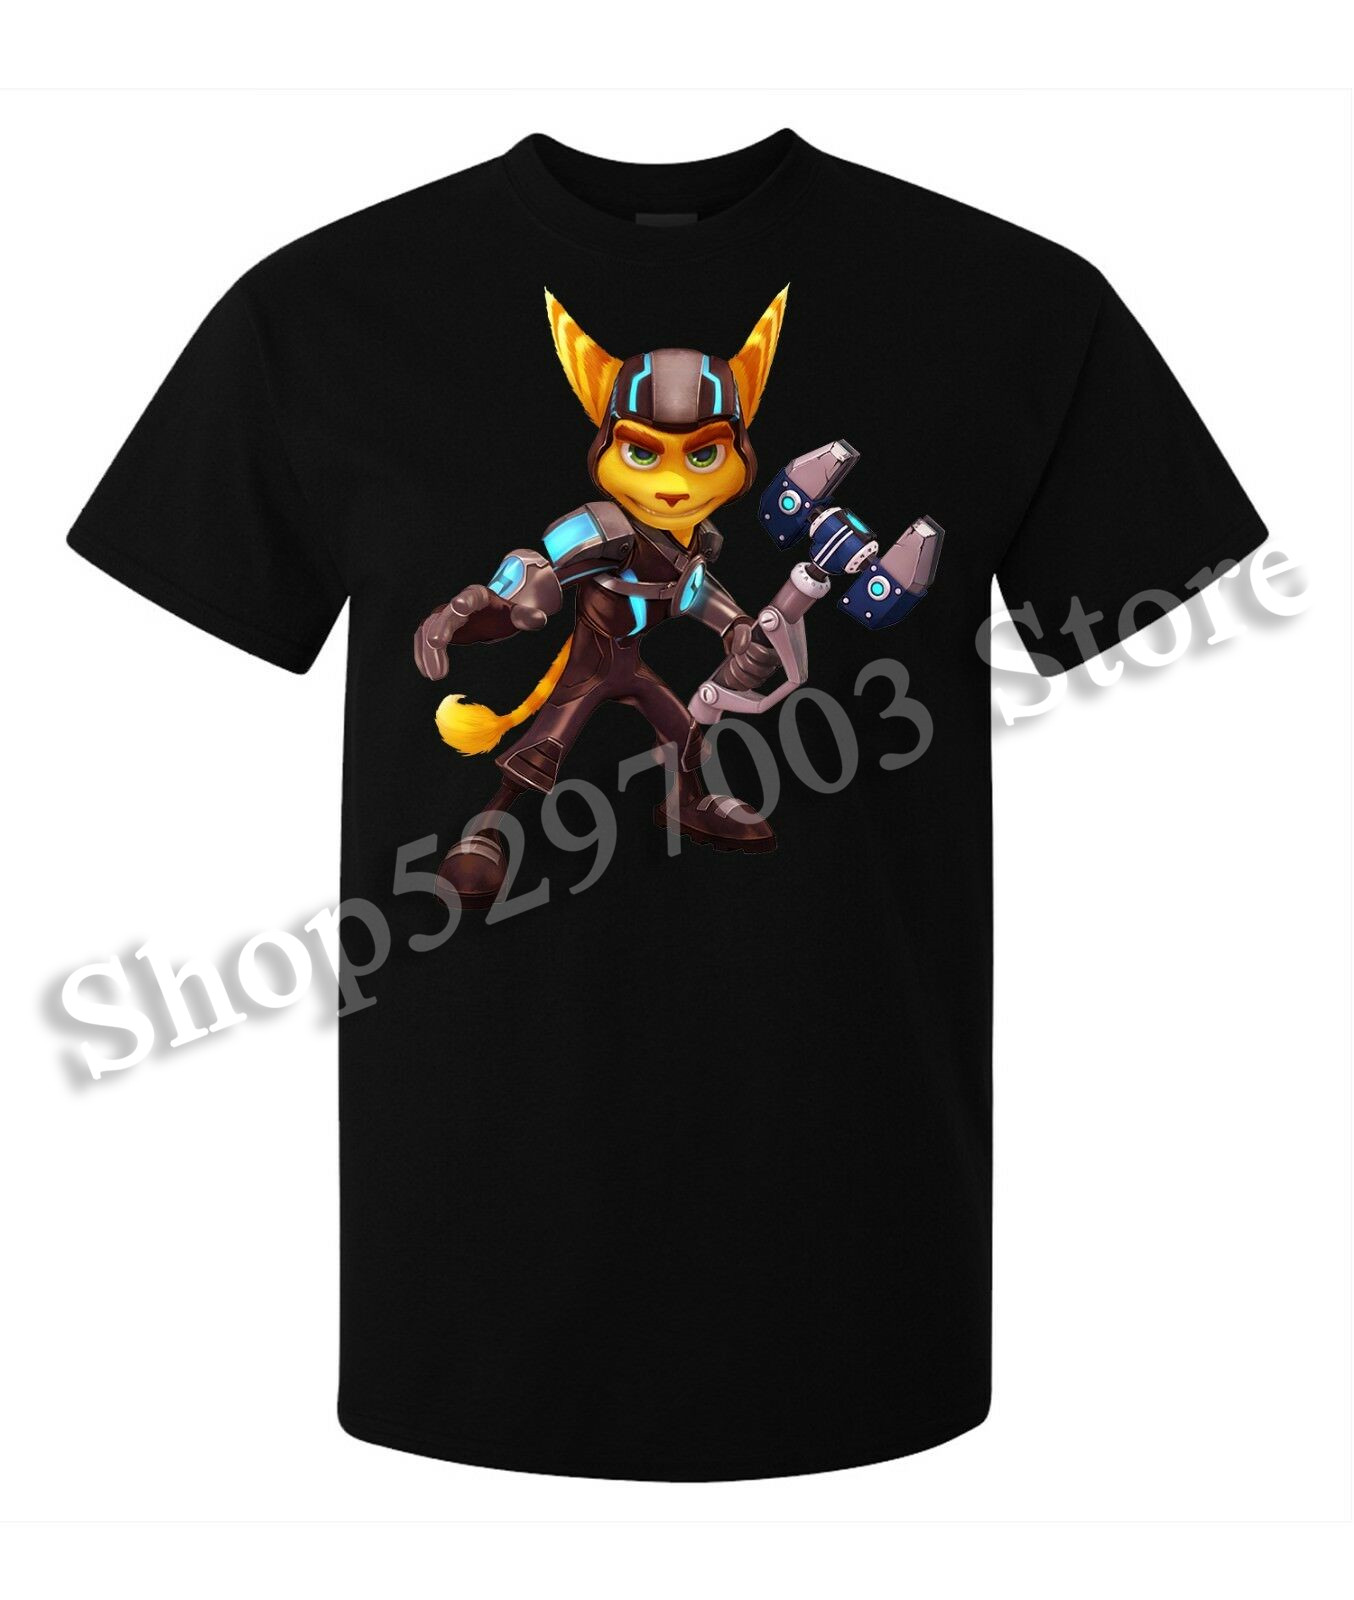 Ratchet And Clank Game Character Ratchet Men'S (Woman'S Available) T Shirt Black Loose Size Tee Shirt image